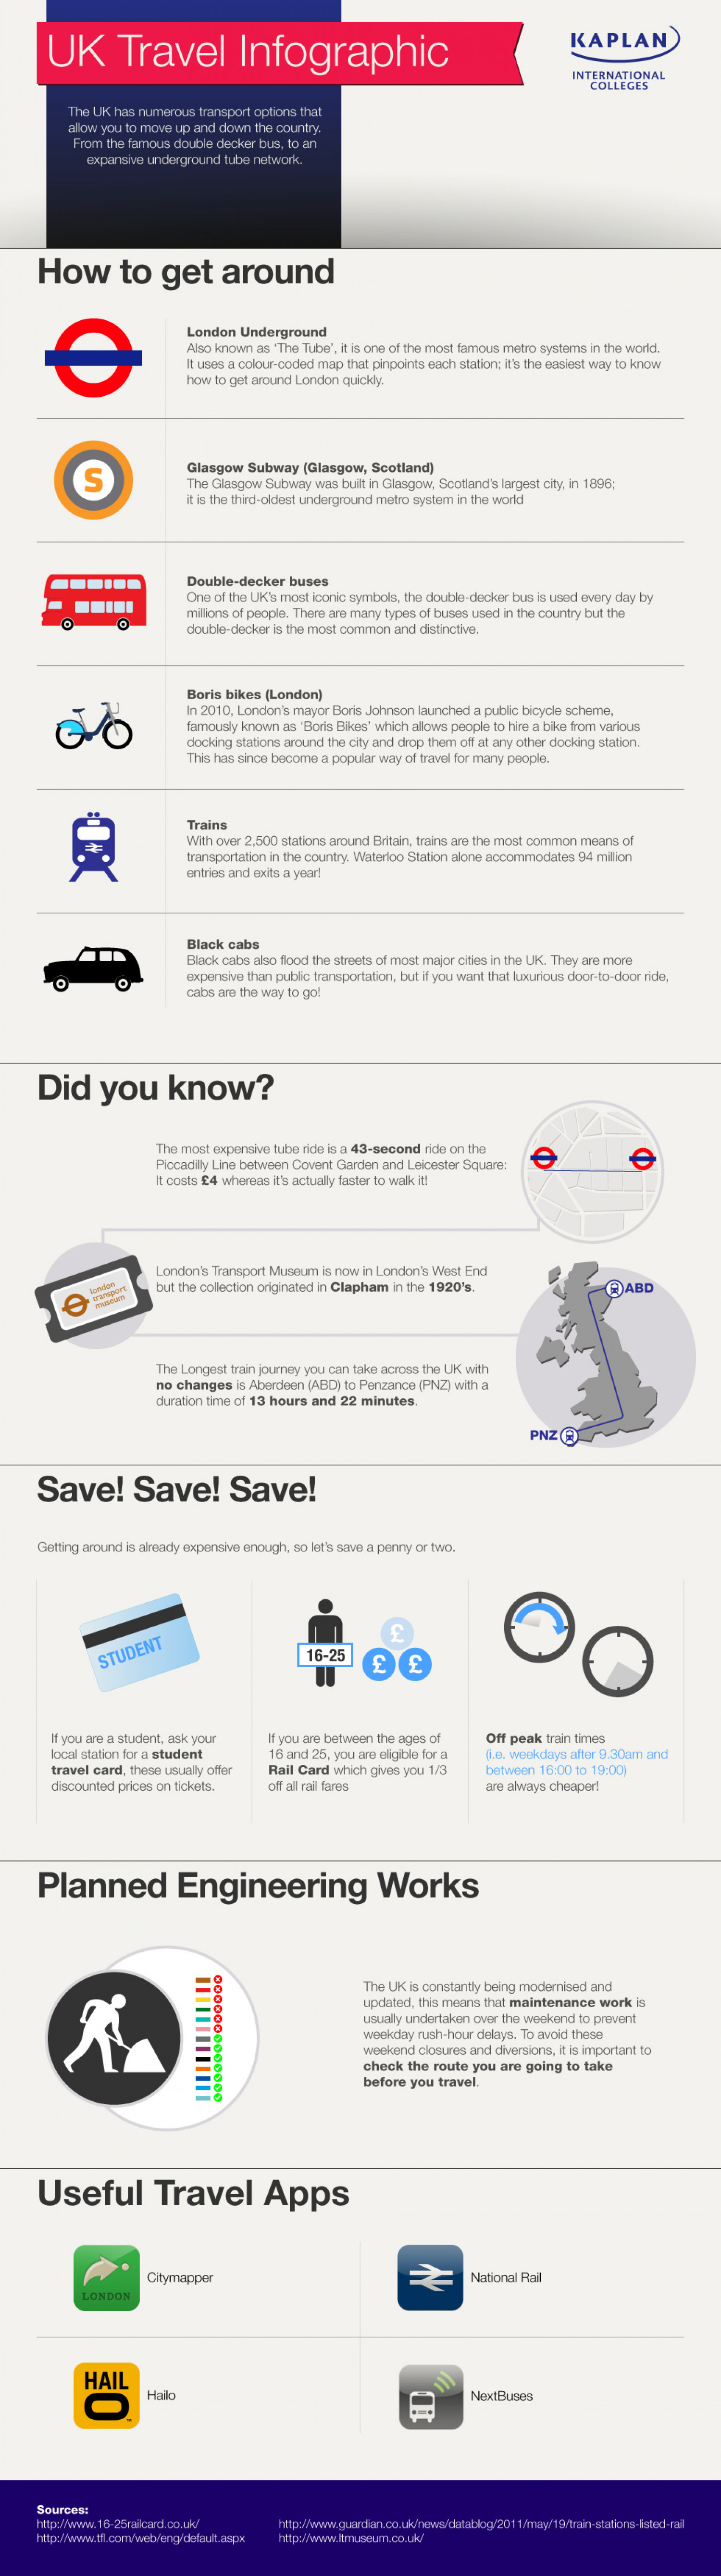 UK Travel Infographic